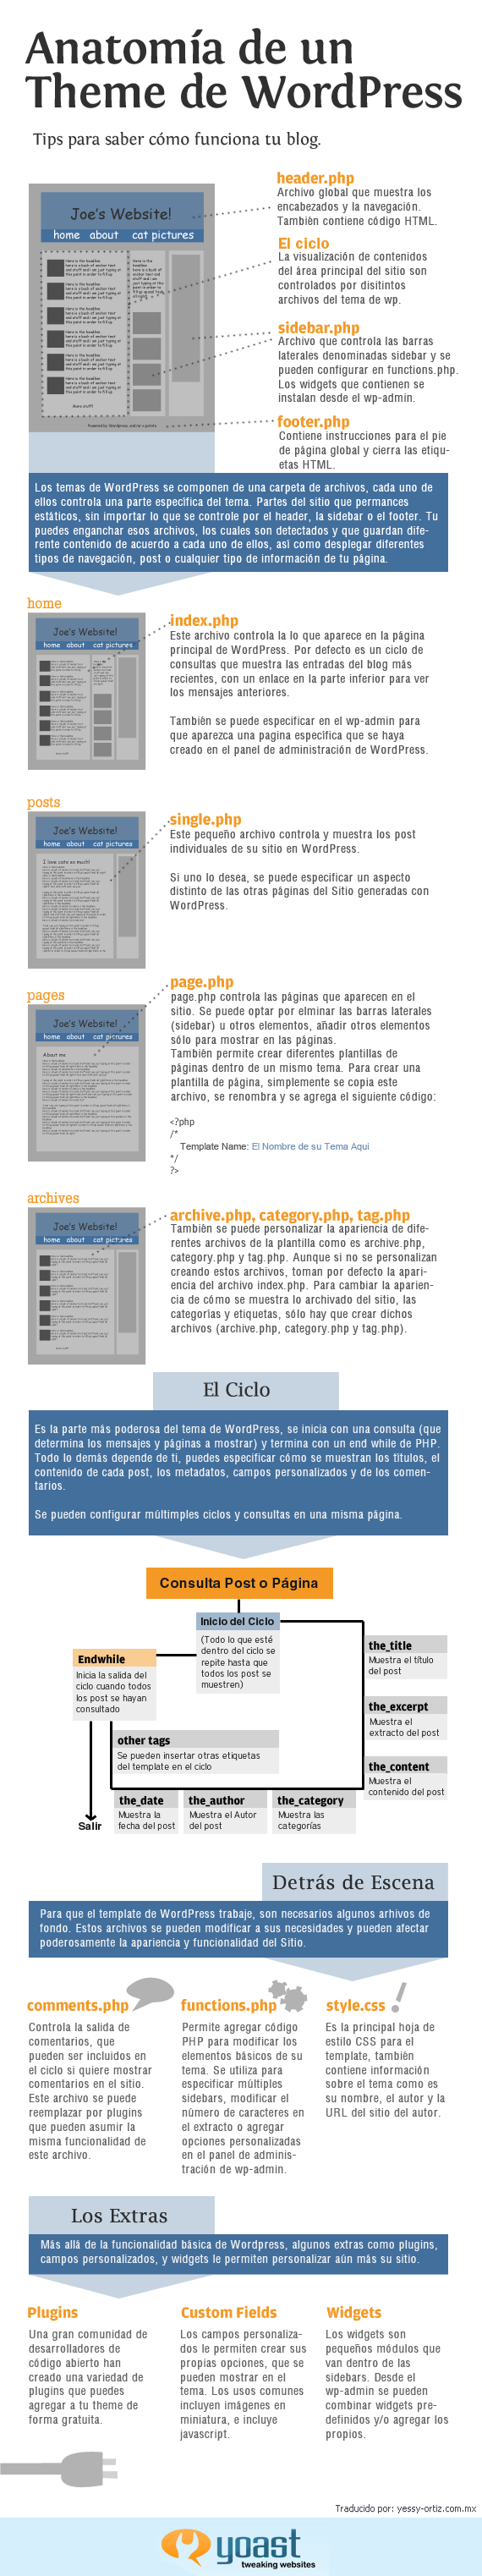 estructura de un theme de wordpress